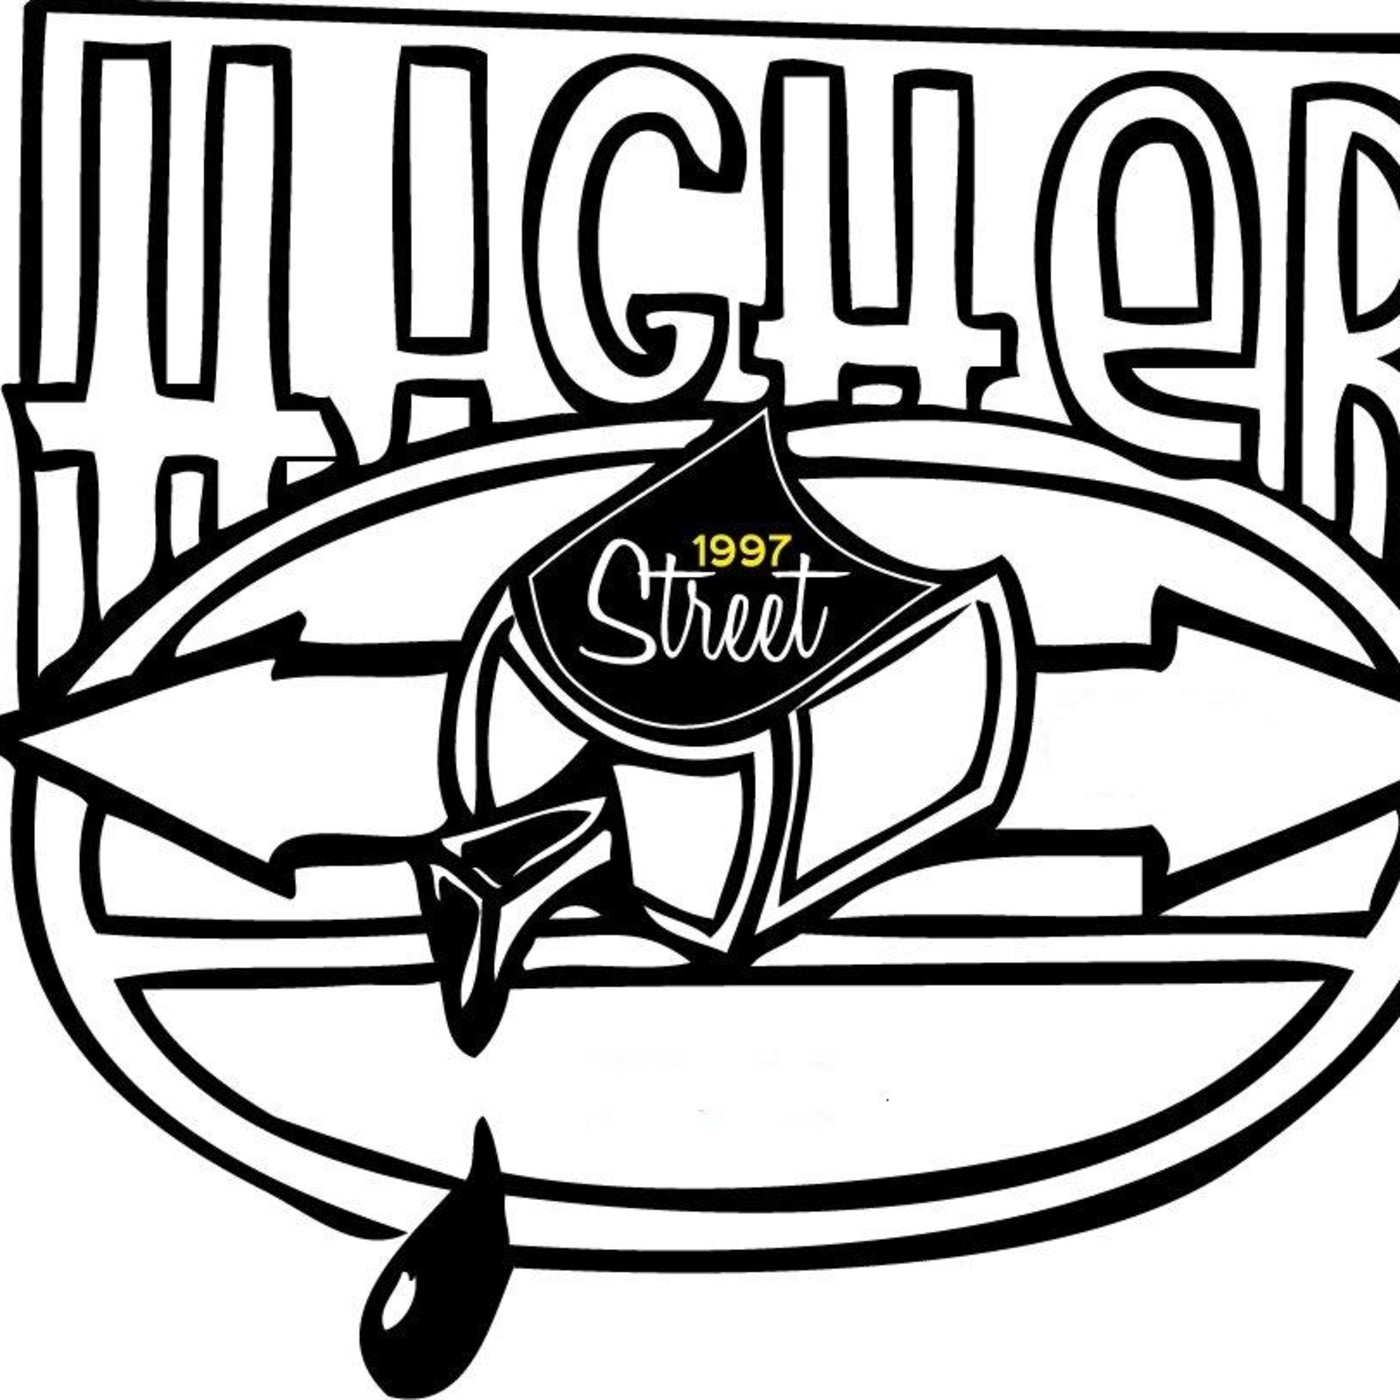 Higher Street RadioFusión